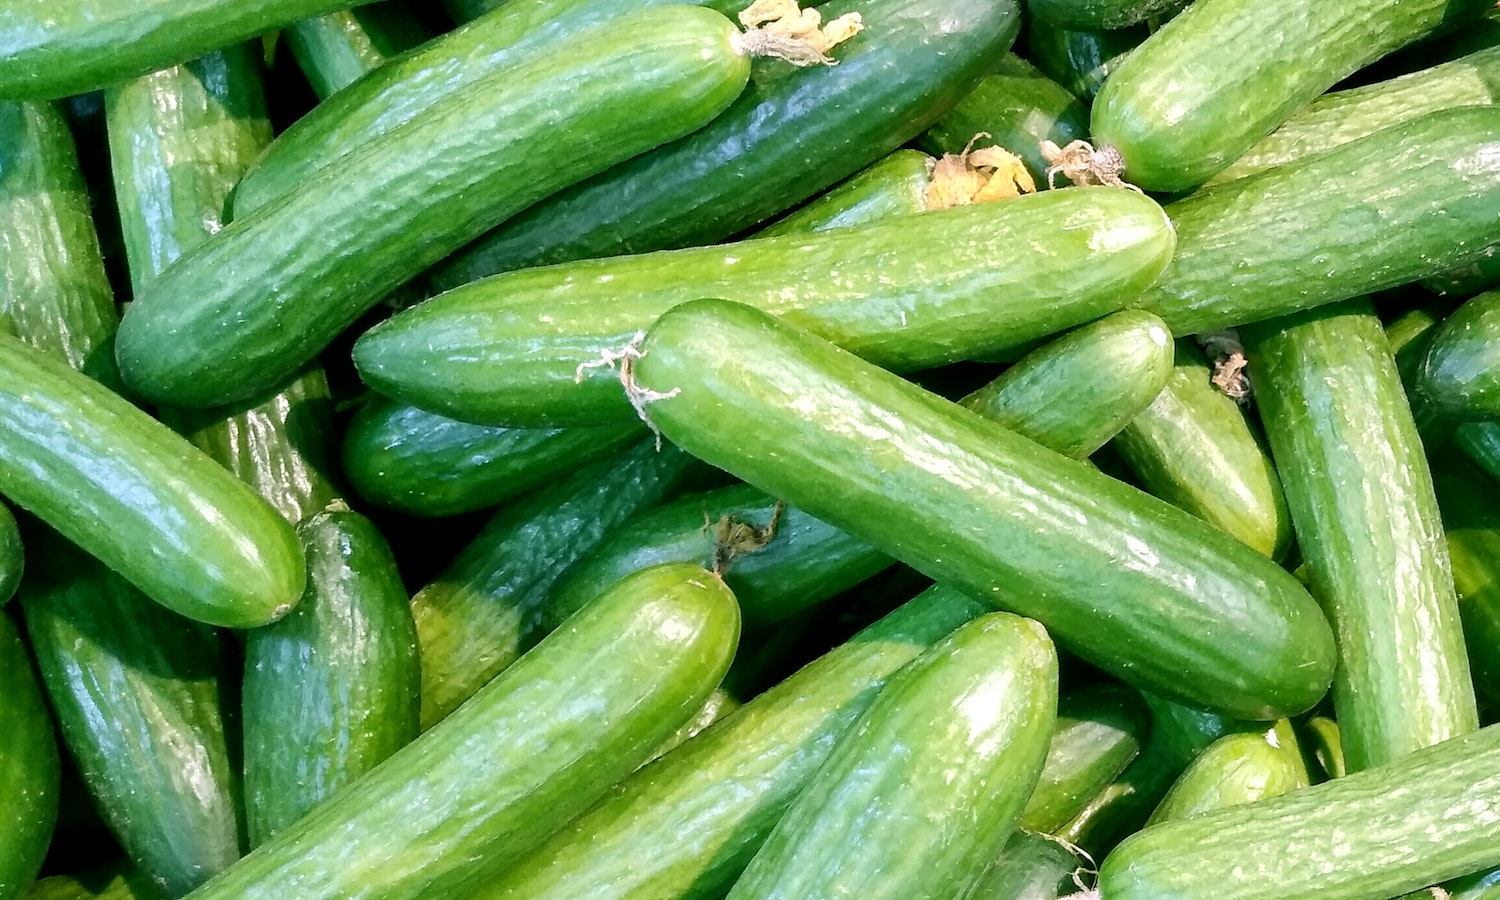 Apeel and Houweling's Group have partnered to launch plastic-free cucumbers in Walmart to increase shelf life and reduce plastic and food waste.